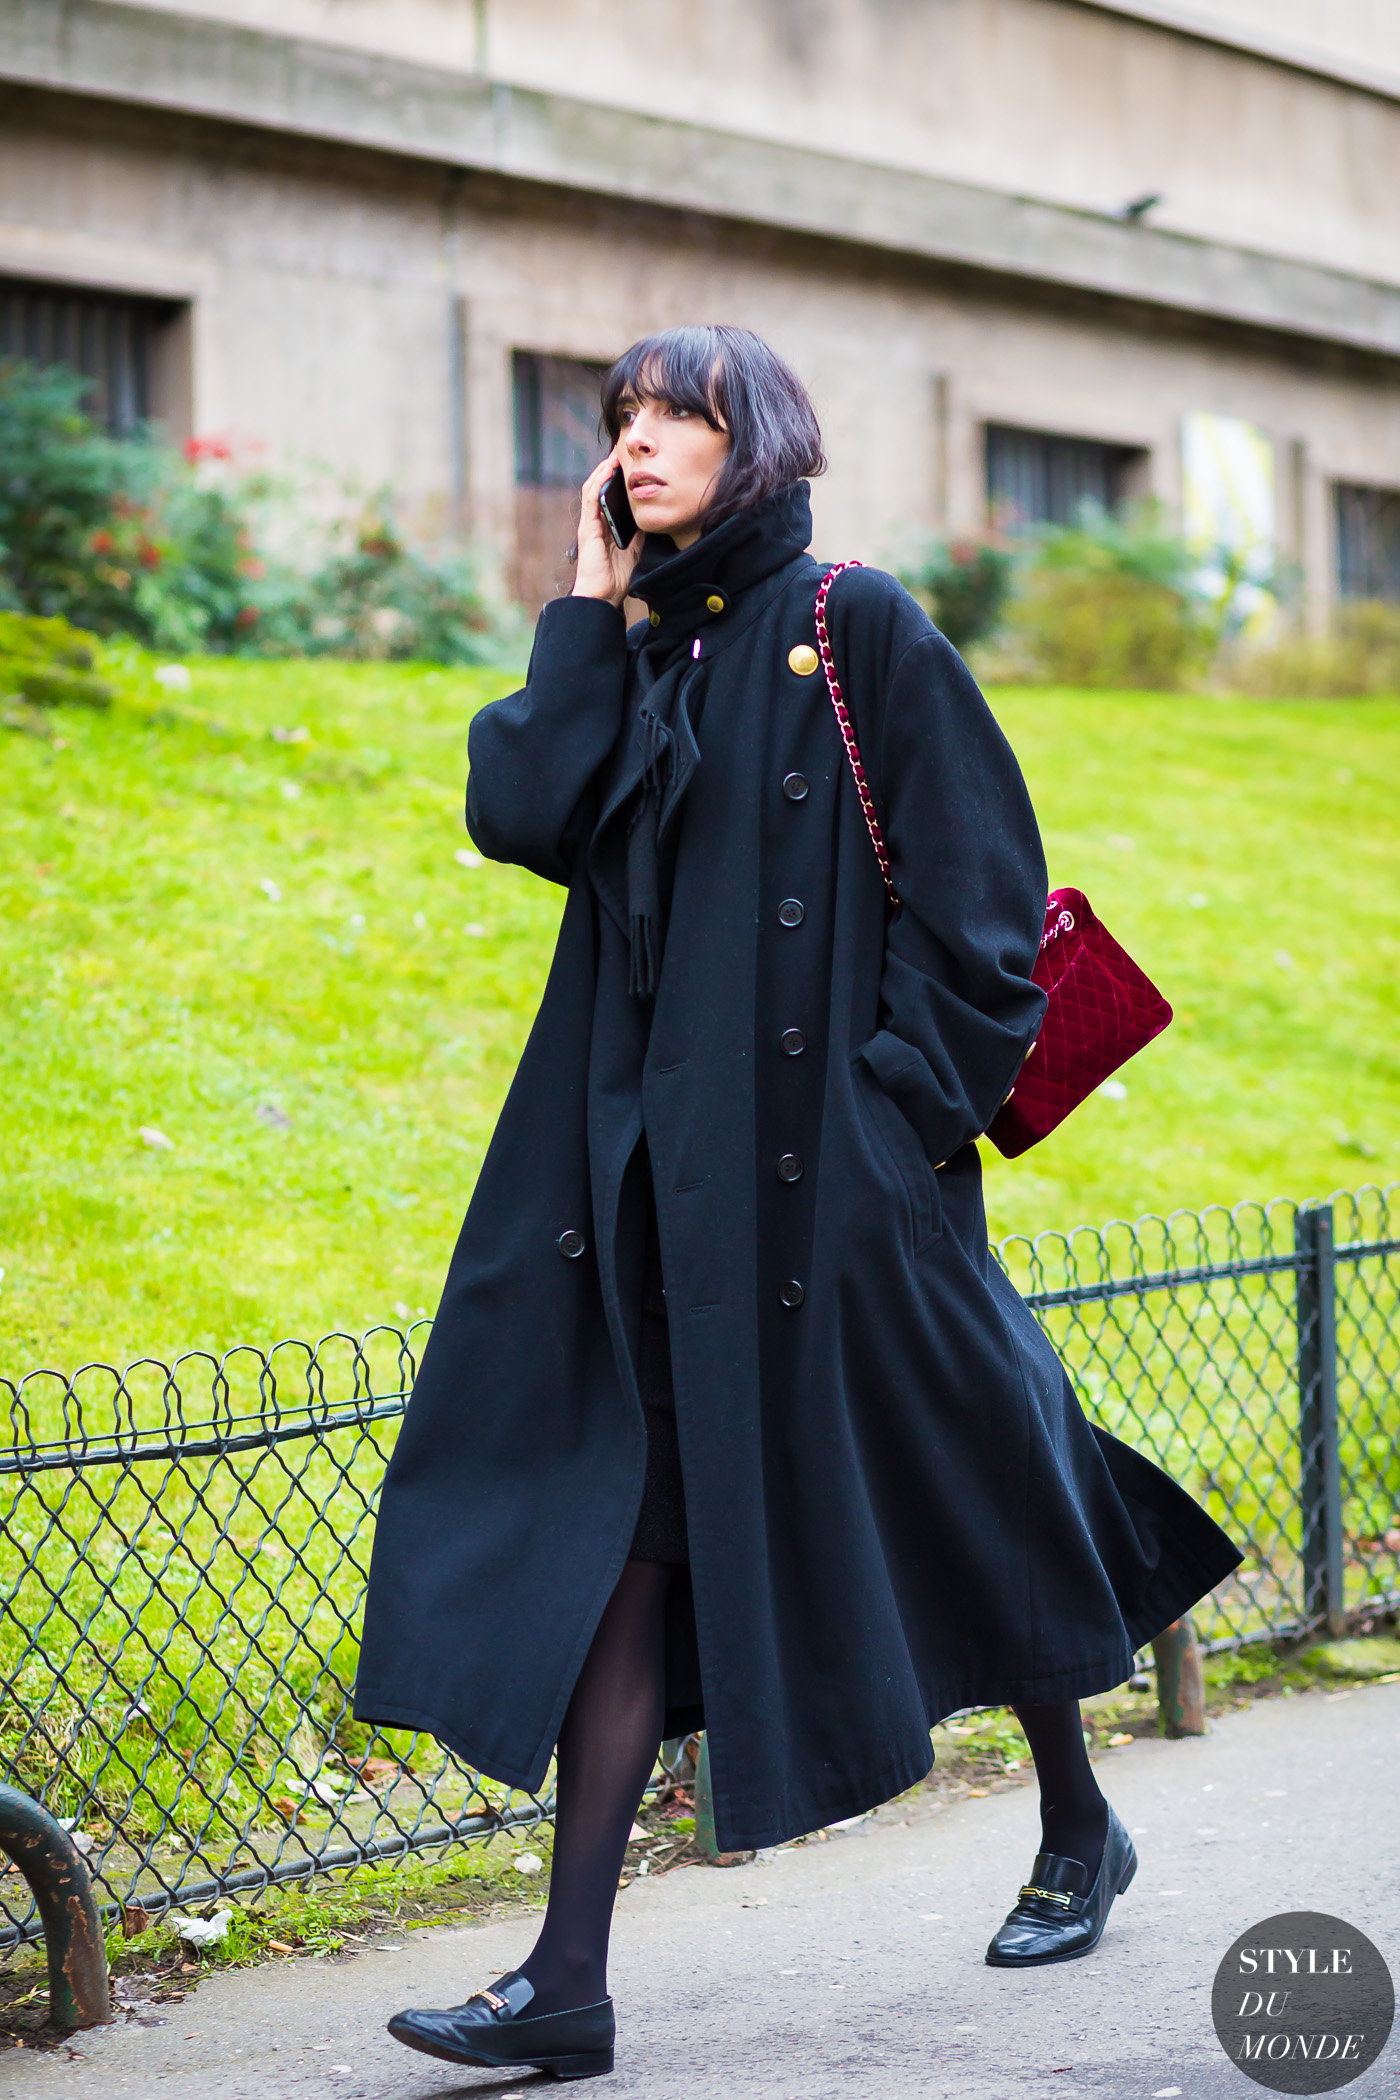 Jamie Bochert Street Style Street Fashion Streetsnaps by STYLEDUMONDE Street Style Fashion Photography